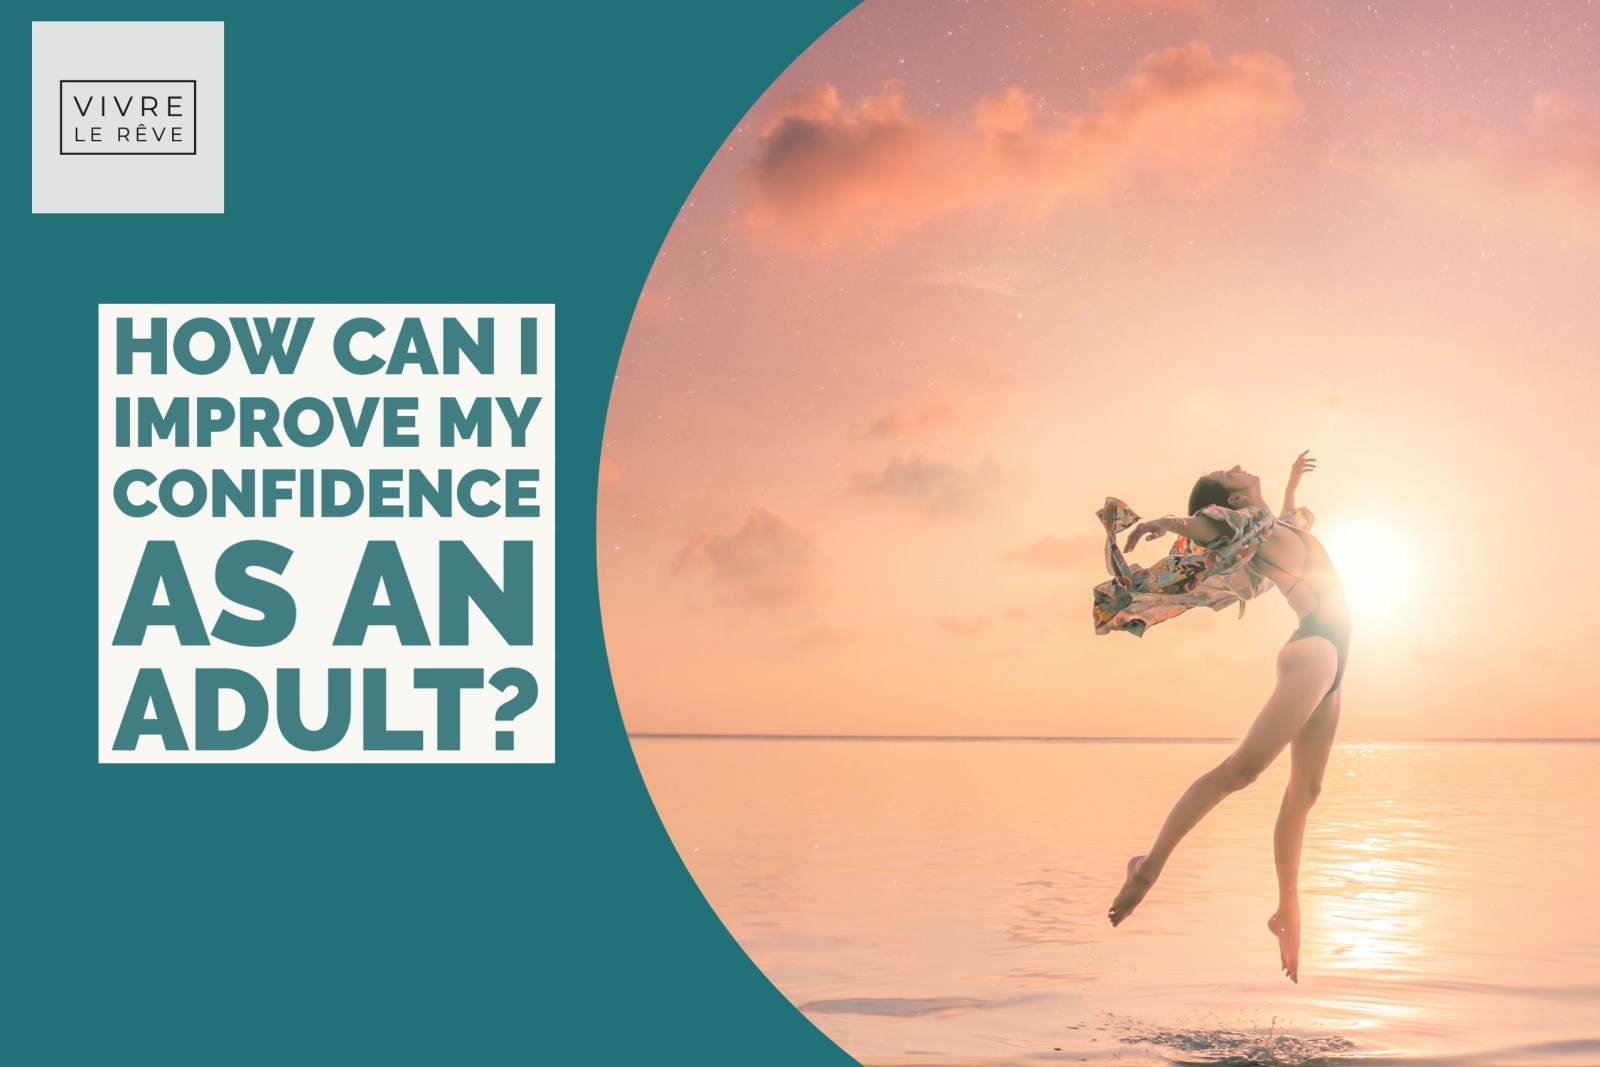 How Can I Improve My Confidence as an Adult?